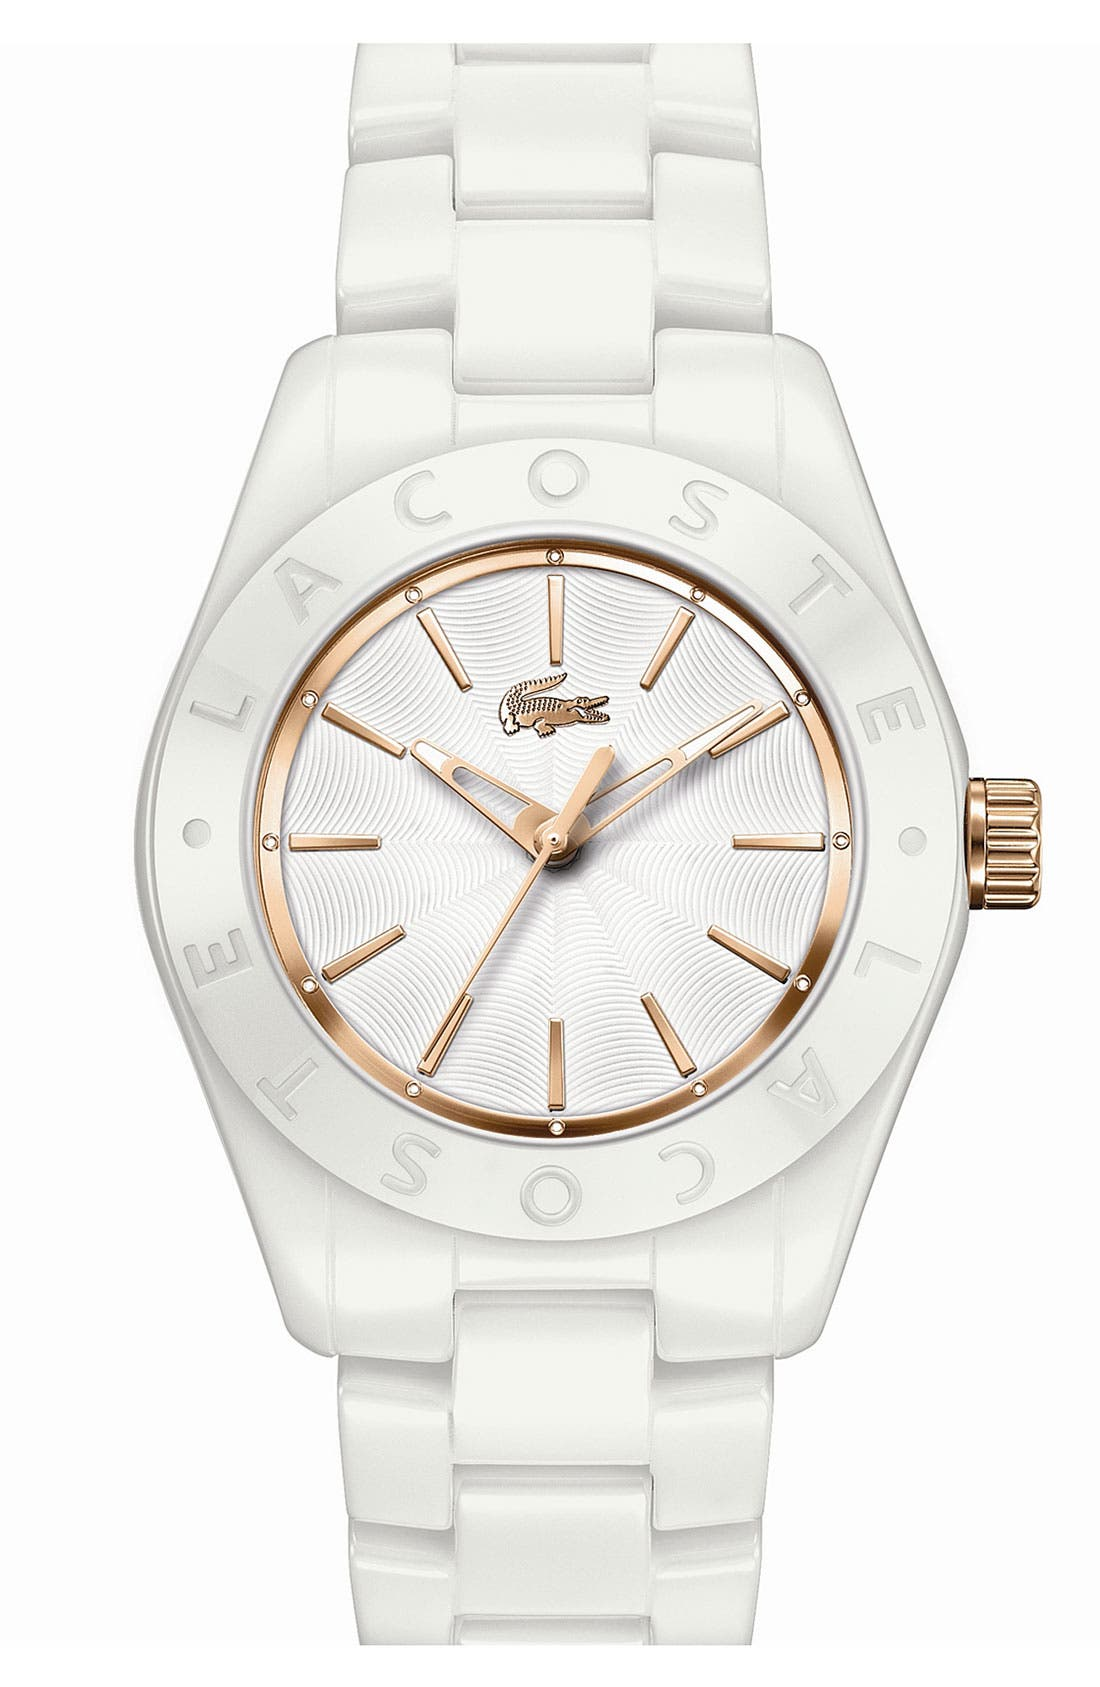 Main Image - Lacoste 'Biarritz' Ceramic Bracelet Watch, 38mm